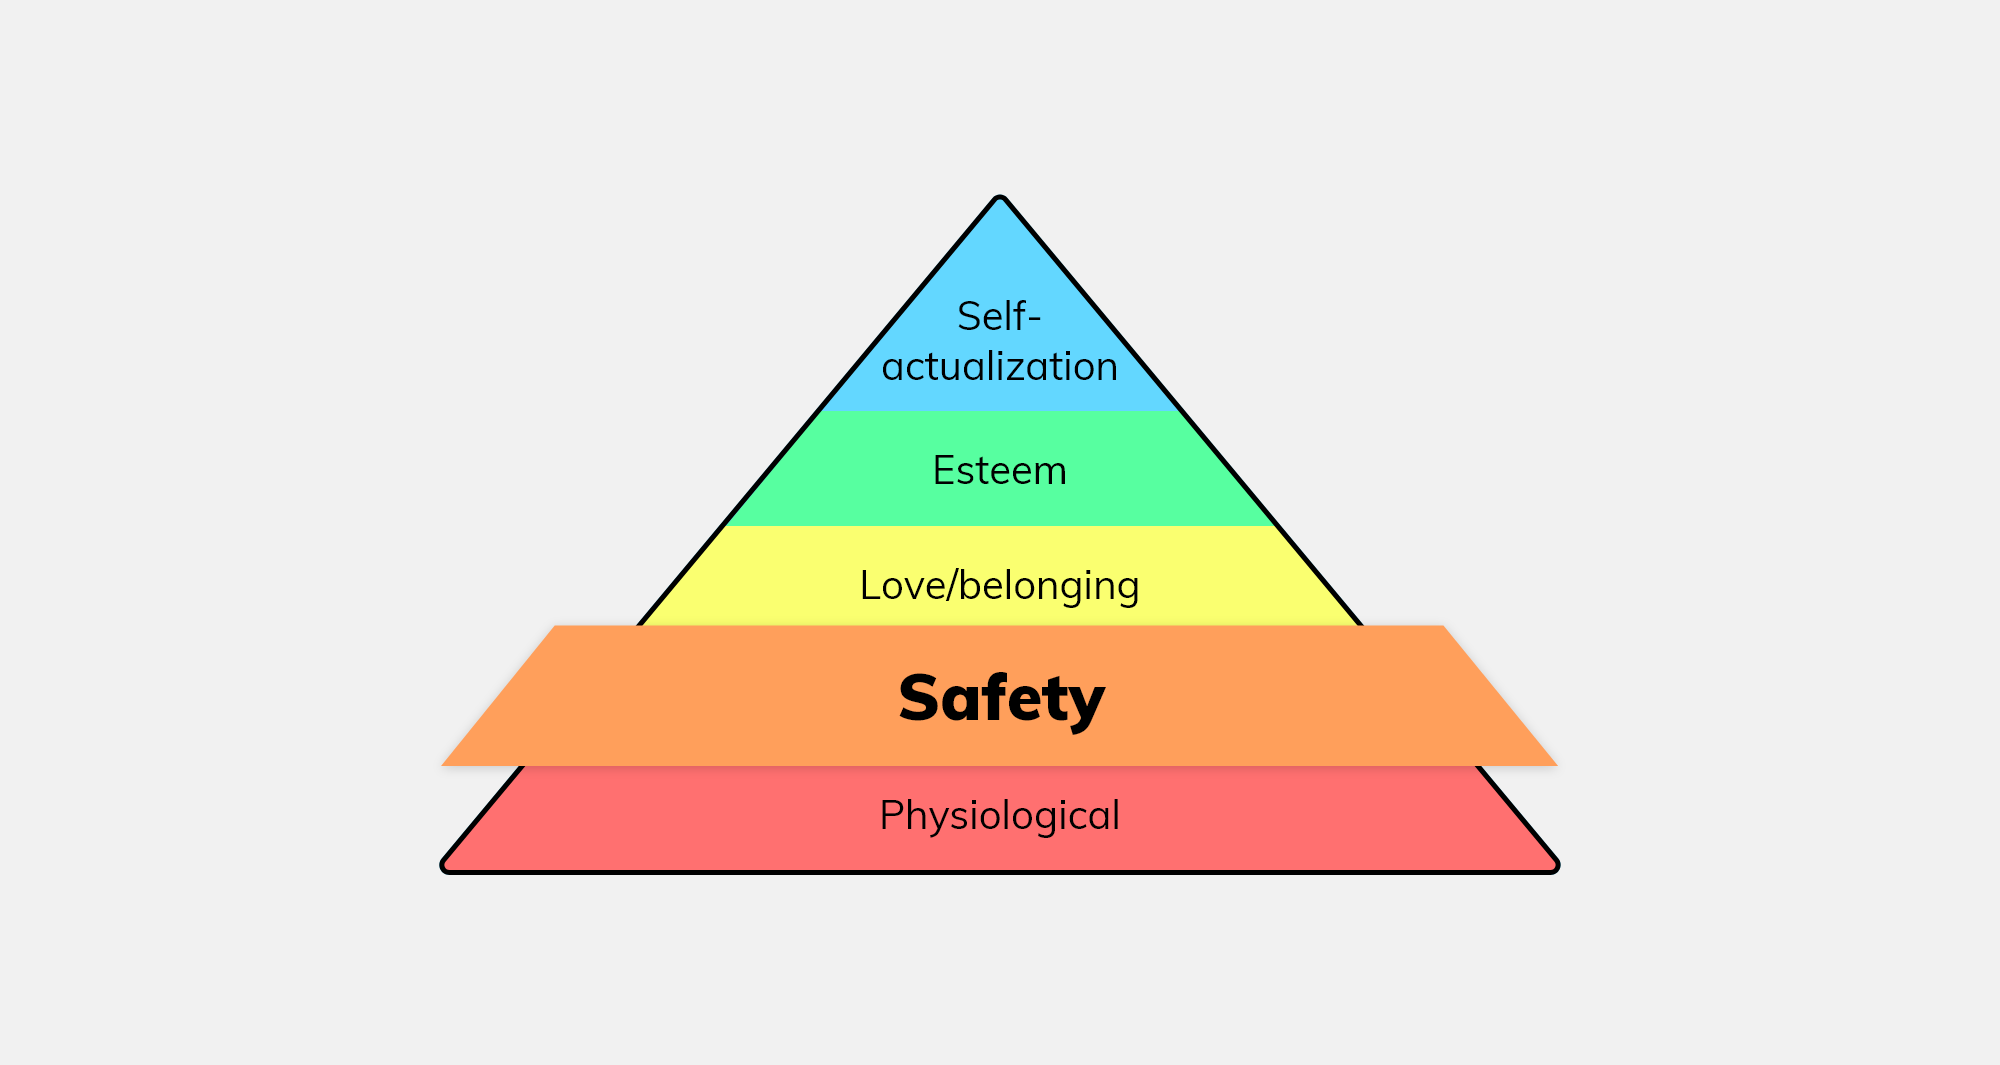 Maslow's hierarchy of needs, going from the tip: self-actualization, esteem, love/belonging, safety (emphasized), and physiological.